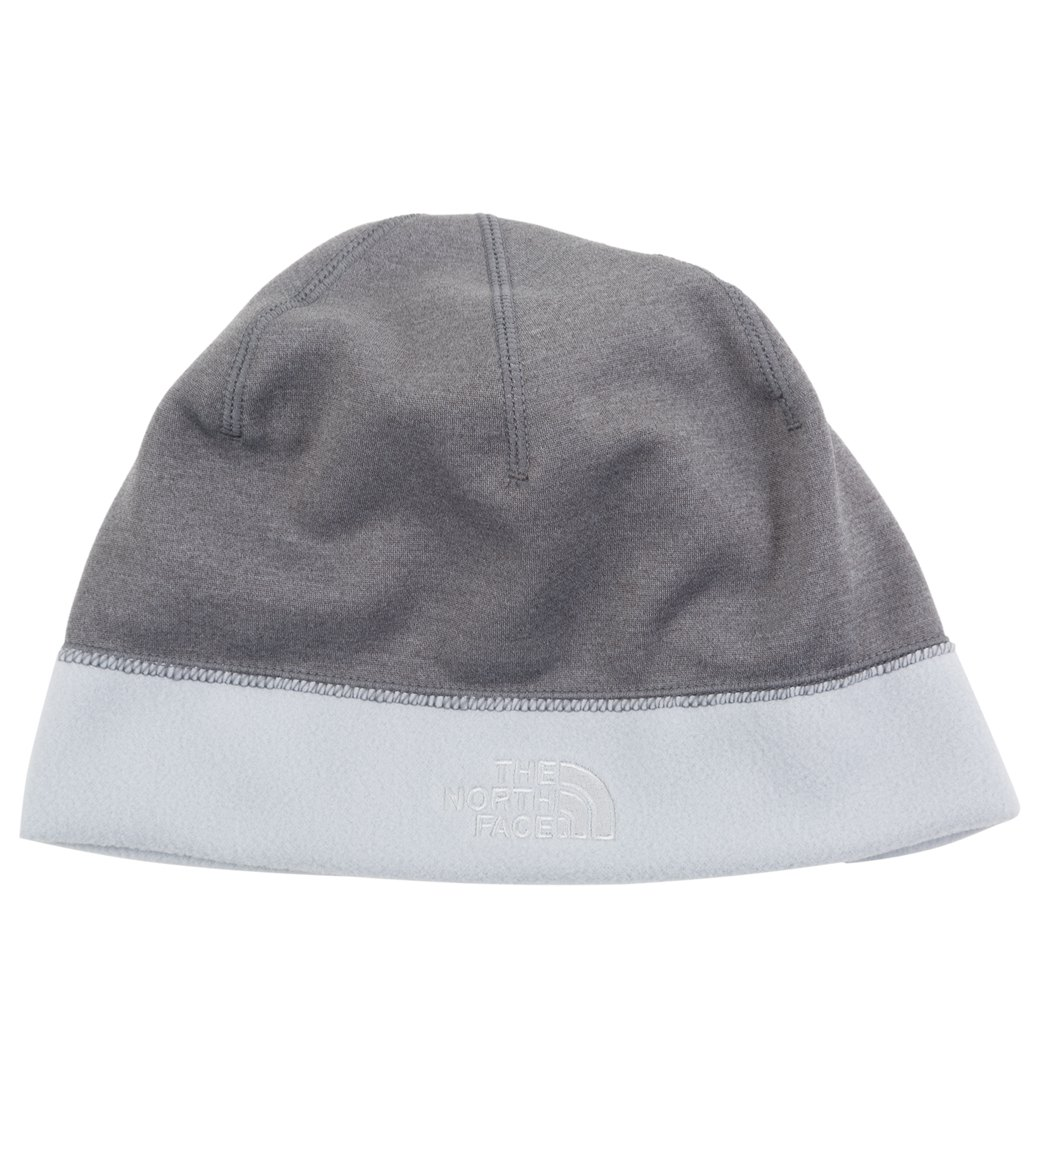 907a1c5a0cd The North Face Ascent Beanie at SwimOutlet.com